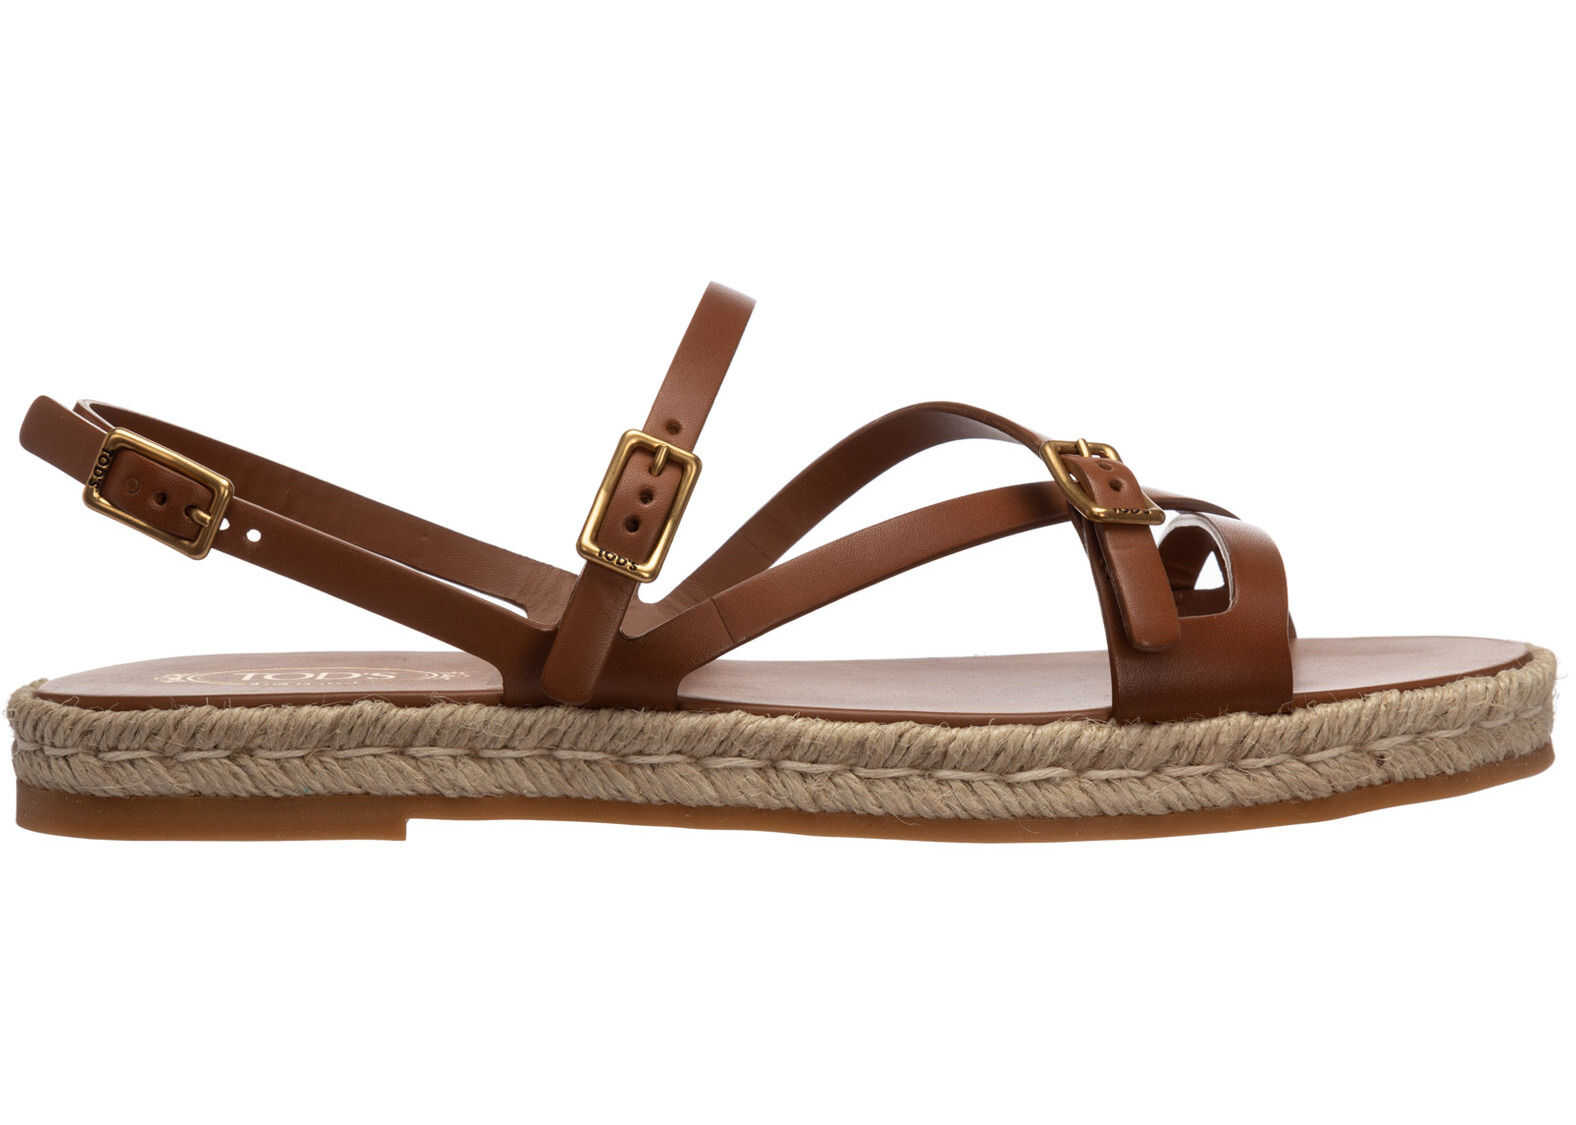 TOD'S Leather Sandals XXW09F0EI50D90S010 Brown imagine b-mall.ro